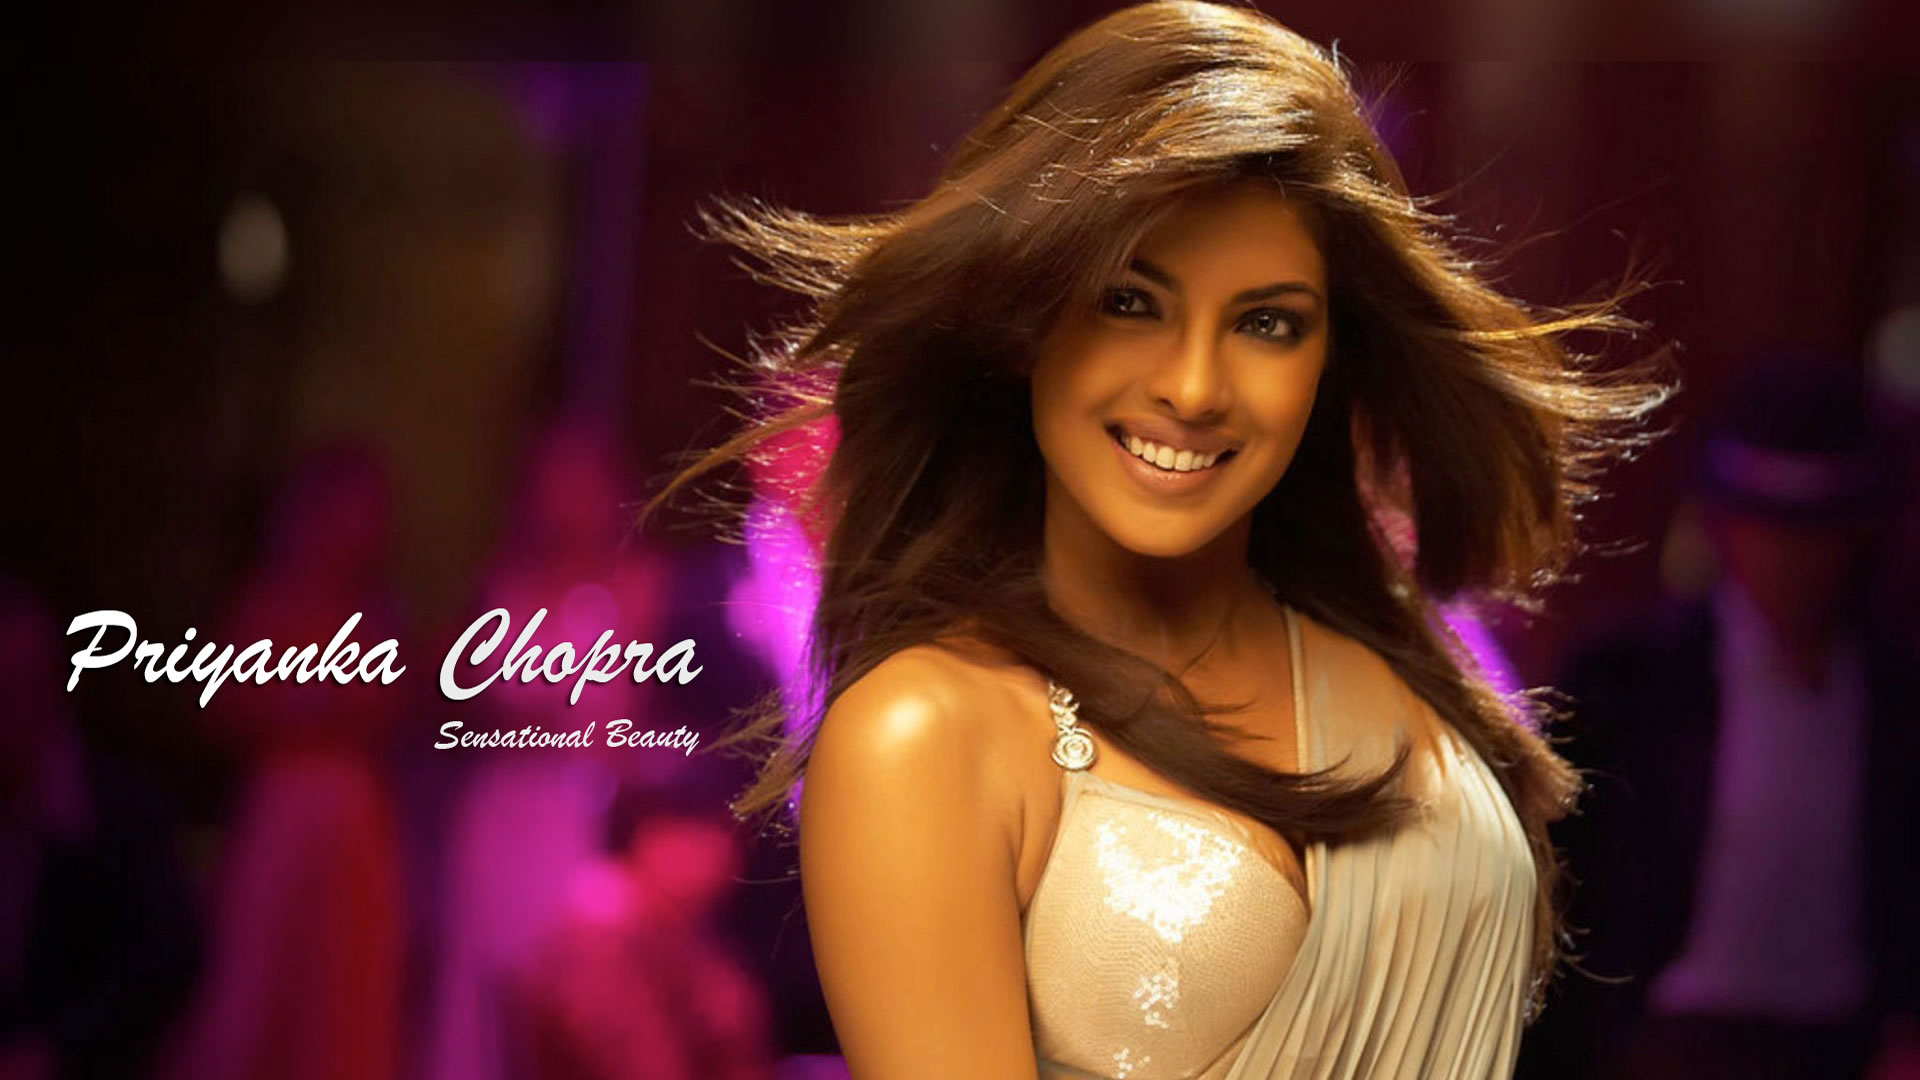 Bollywood Actress Wallpapers Hd Free Download 49 Find: Priyanka Chopra Wallpapers High Resolution And Quality